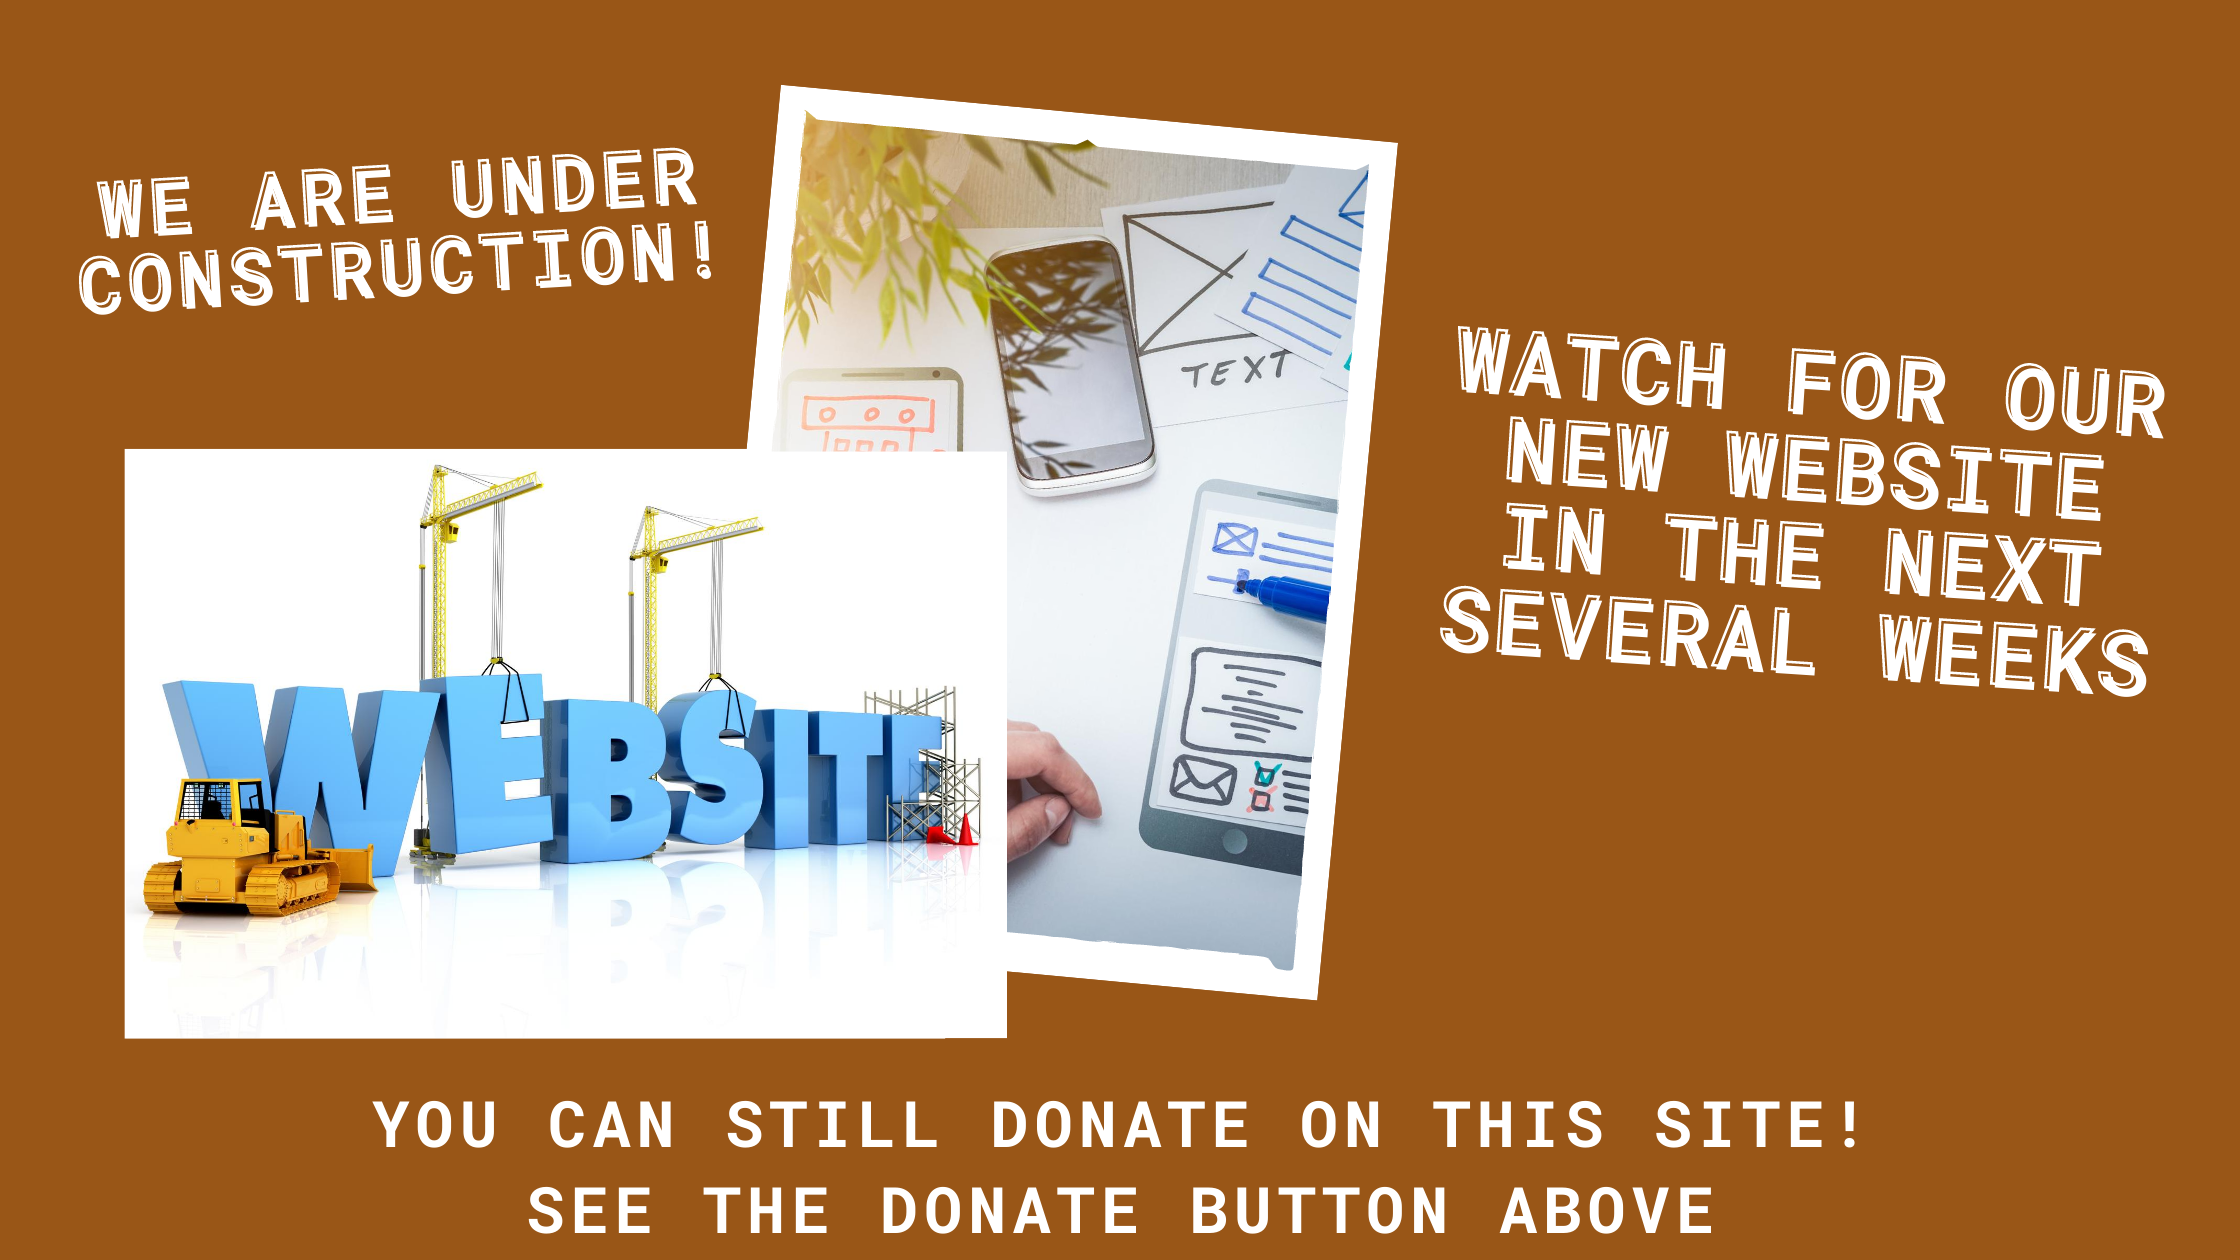 We are under construction! Watch for our new website in the next several weeks. You can still donate on this site! See the donate button above.